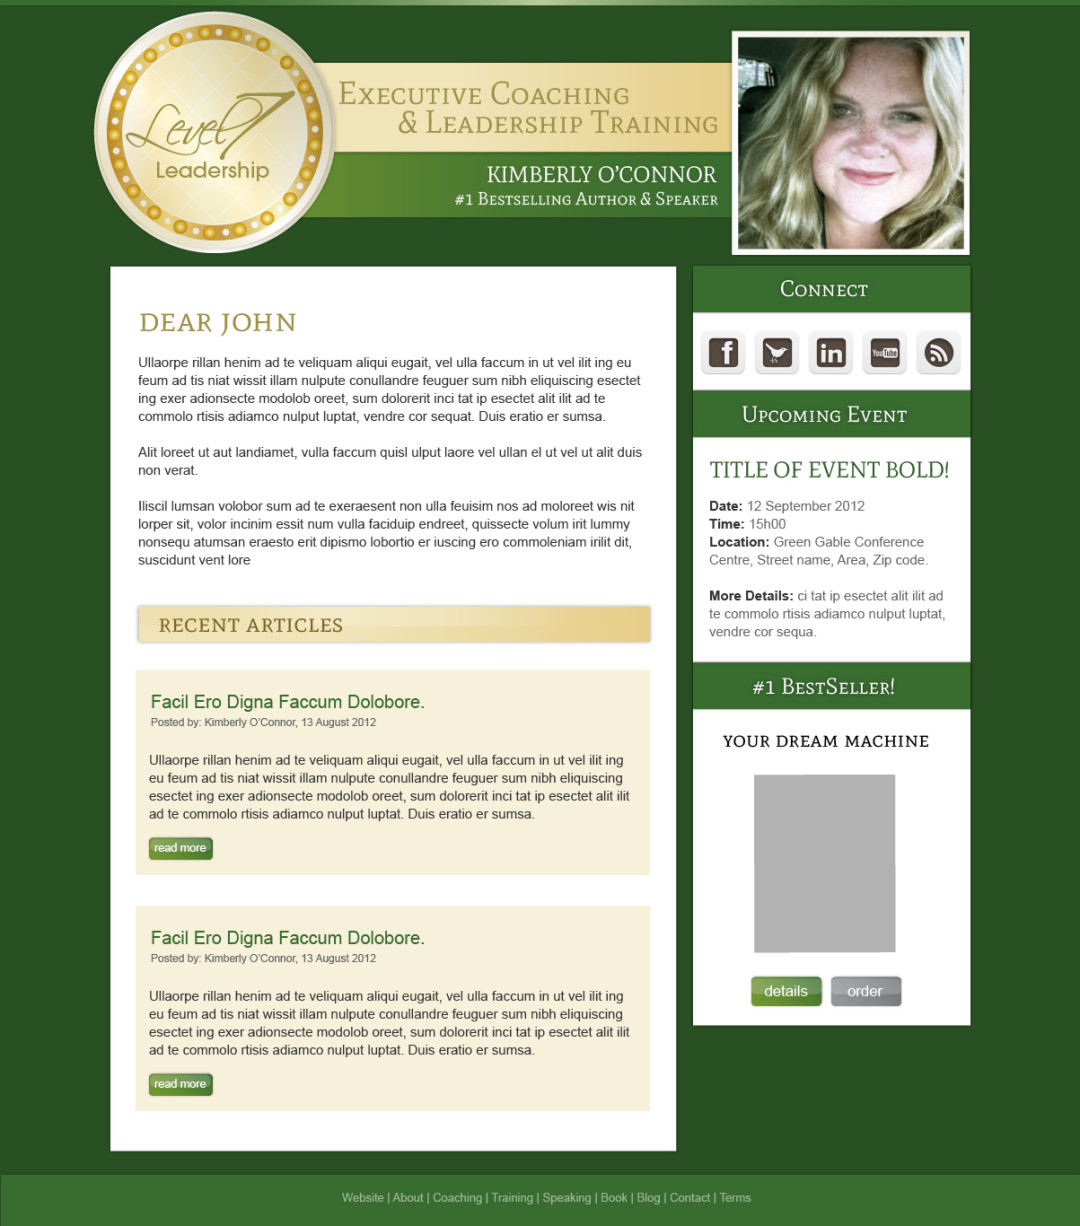 Email Marketing Newsletter for Kimberly O'Connor